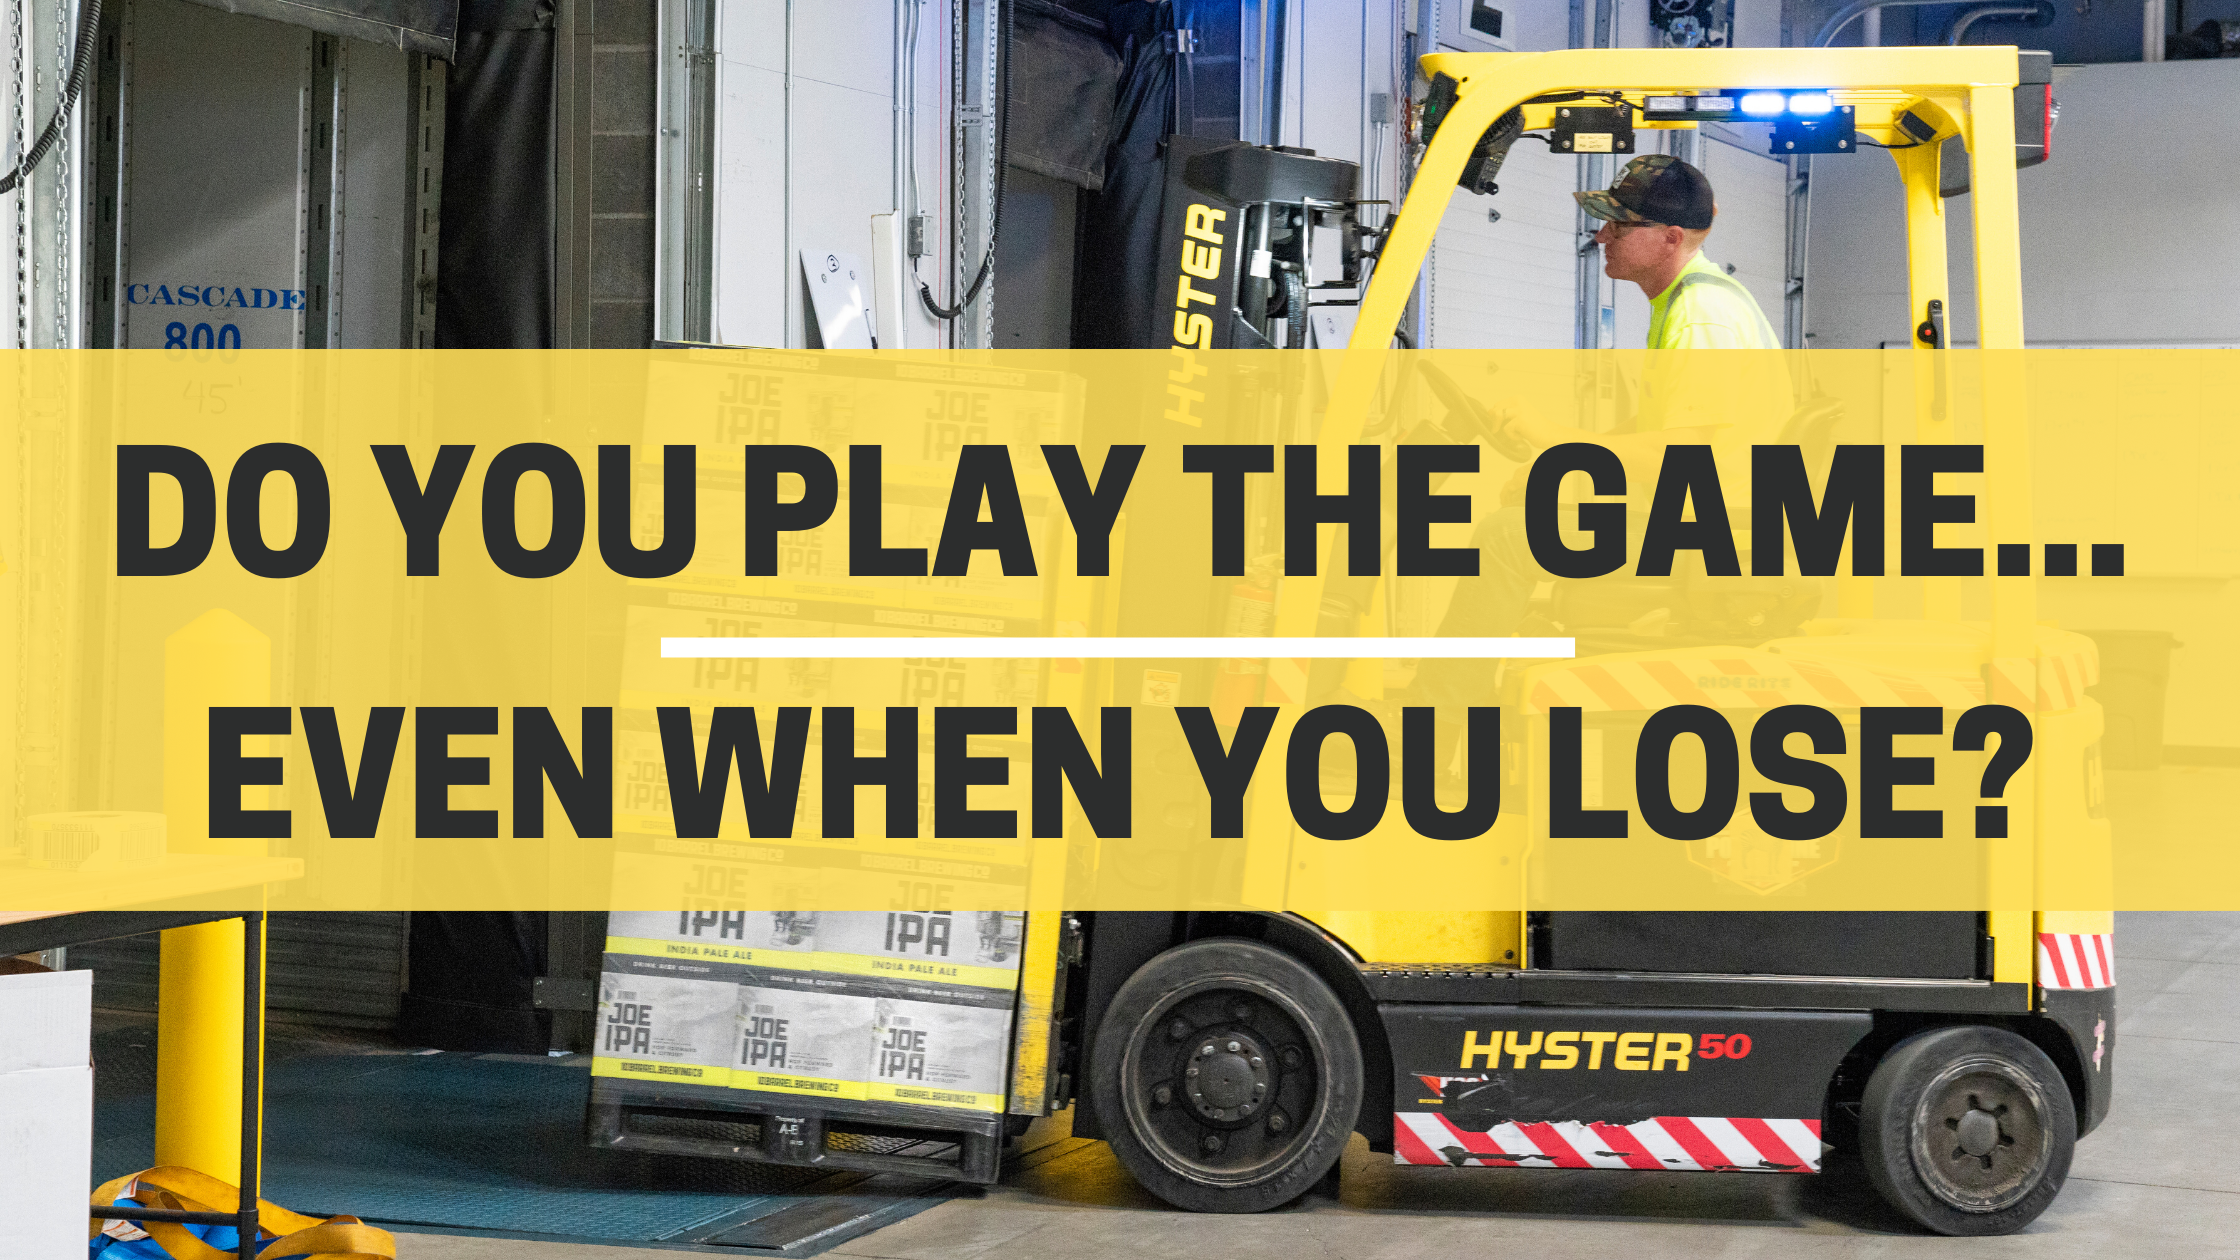 Do You Play The Game...Even When You Lose?